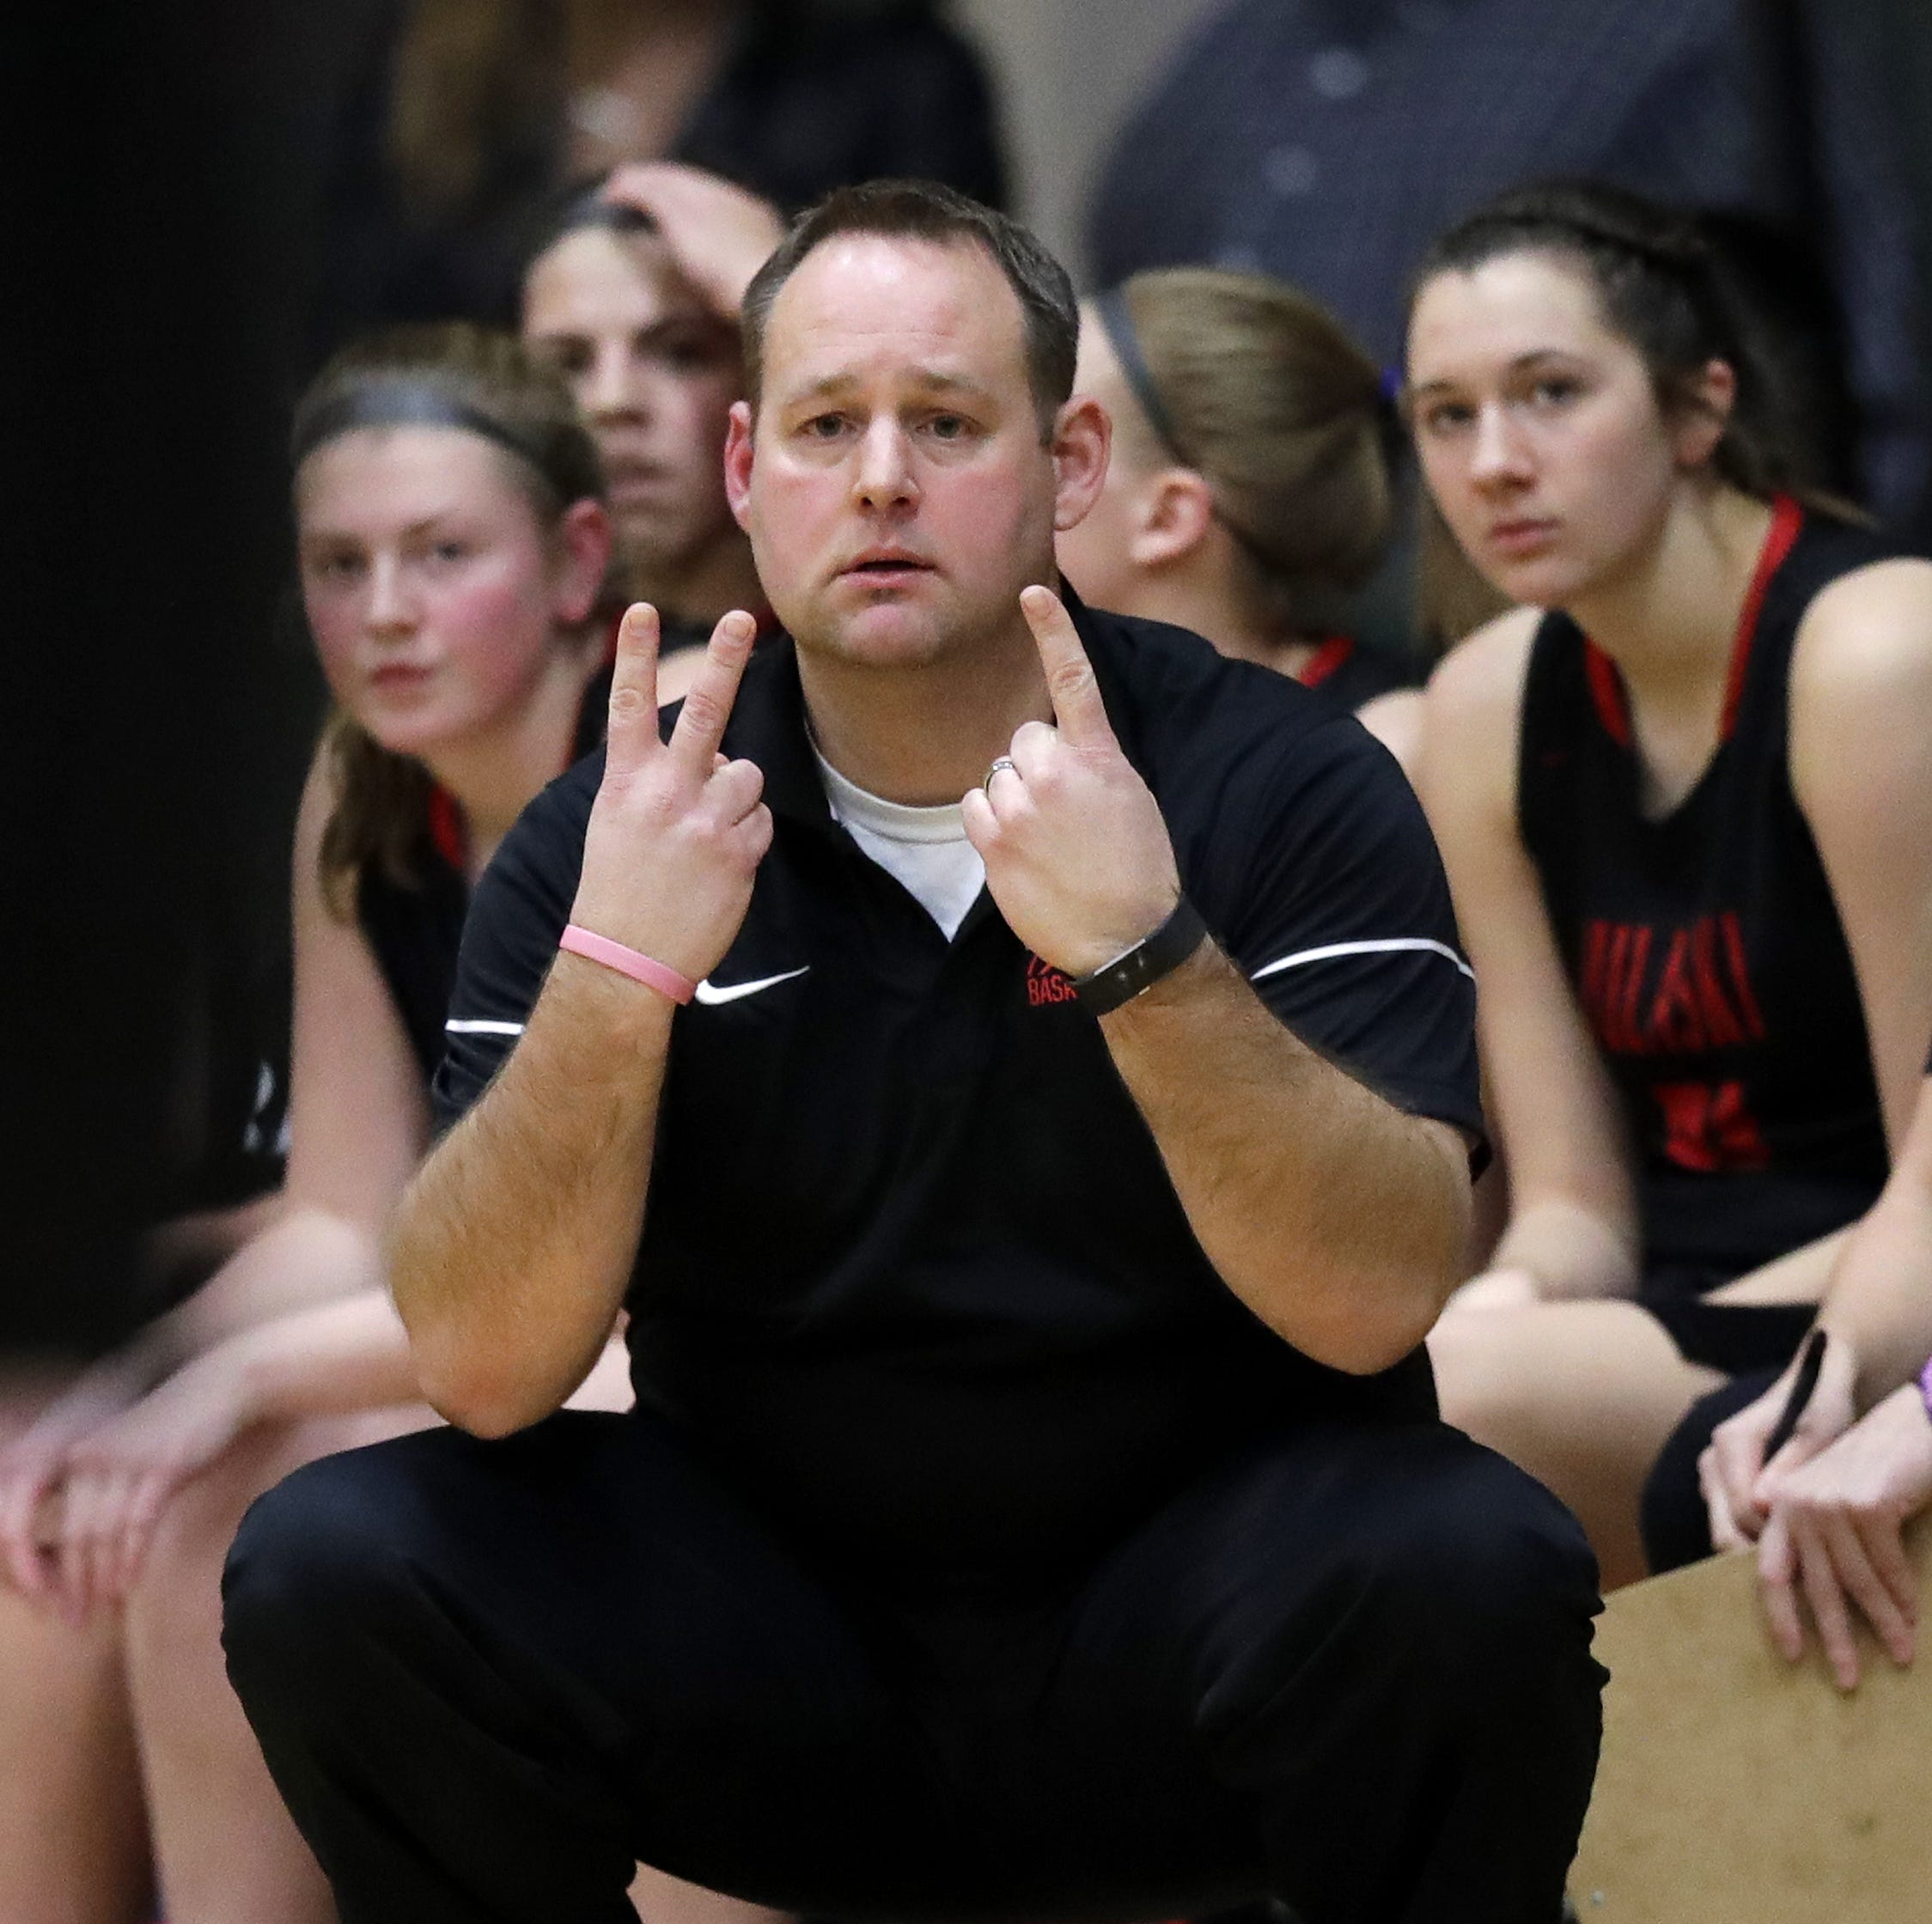 Pulaski's Charney, ex-UWGB player Terry added to St. Norbert women's basketball staff